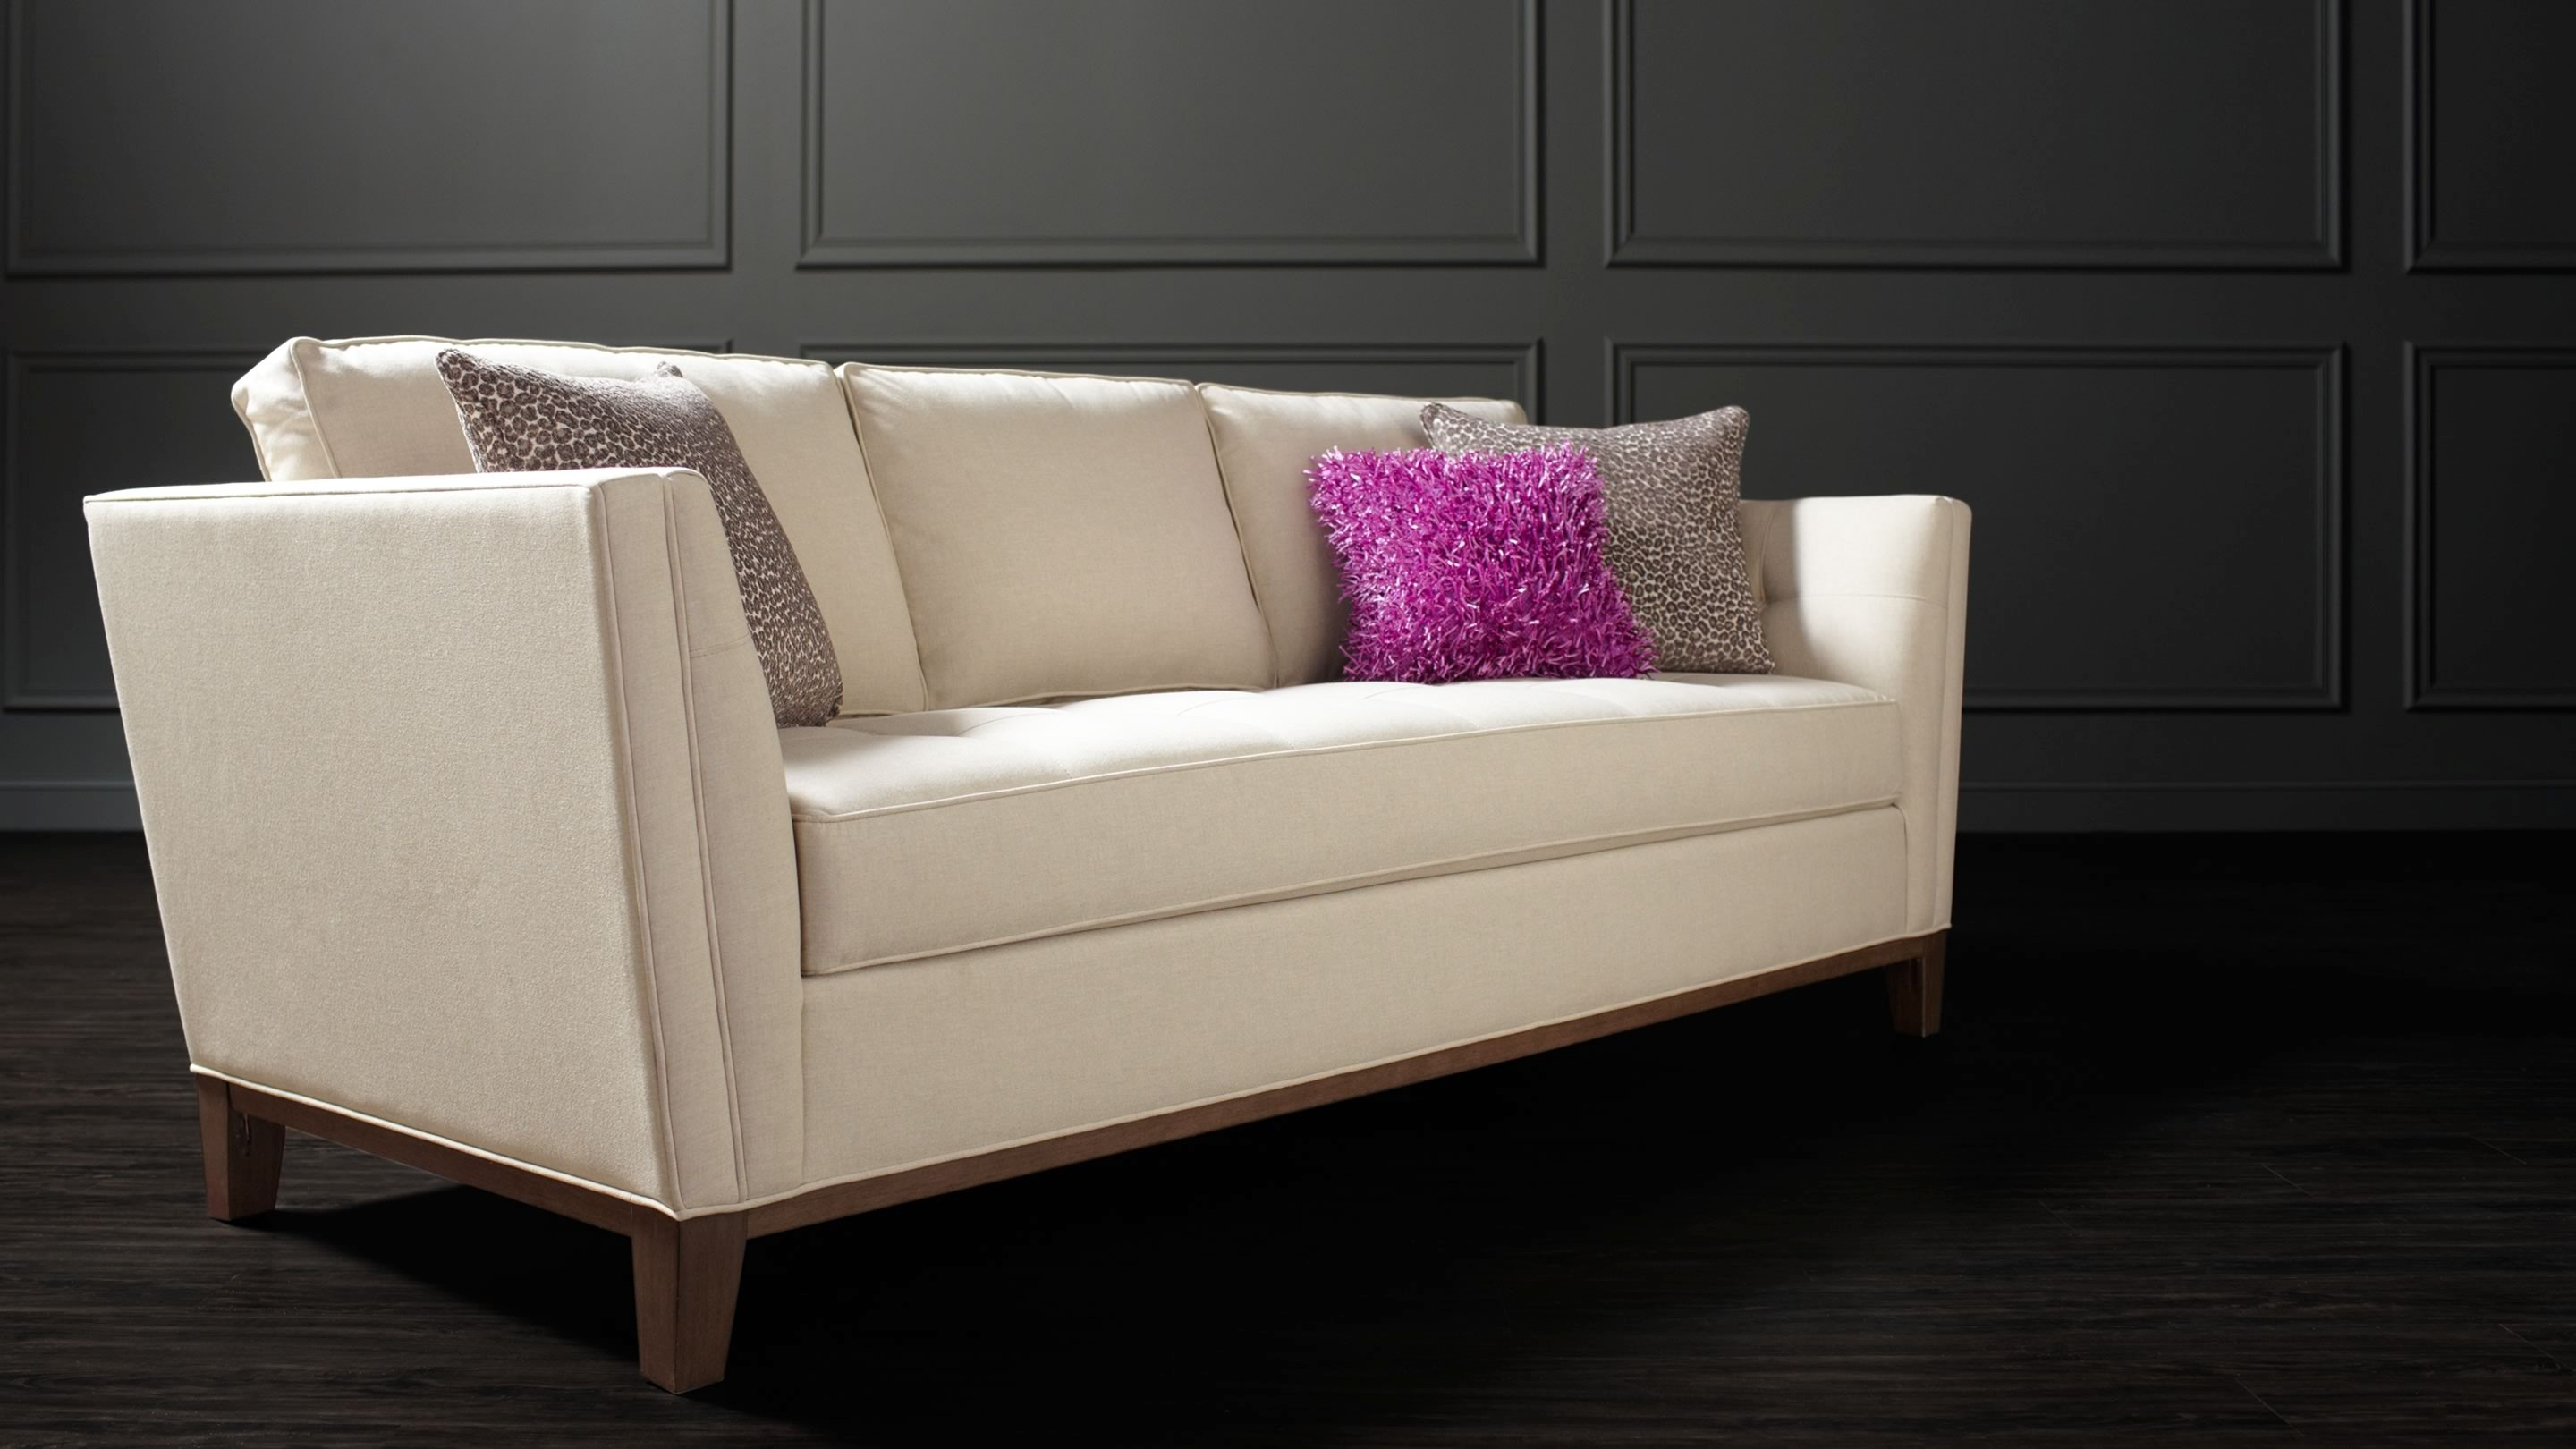 Rooms to Go Sleeper sofa Fresh Rooms to Go sofa Bed Buying Guide Convertible Sleeper sofas Design